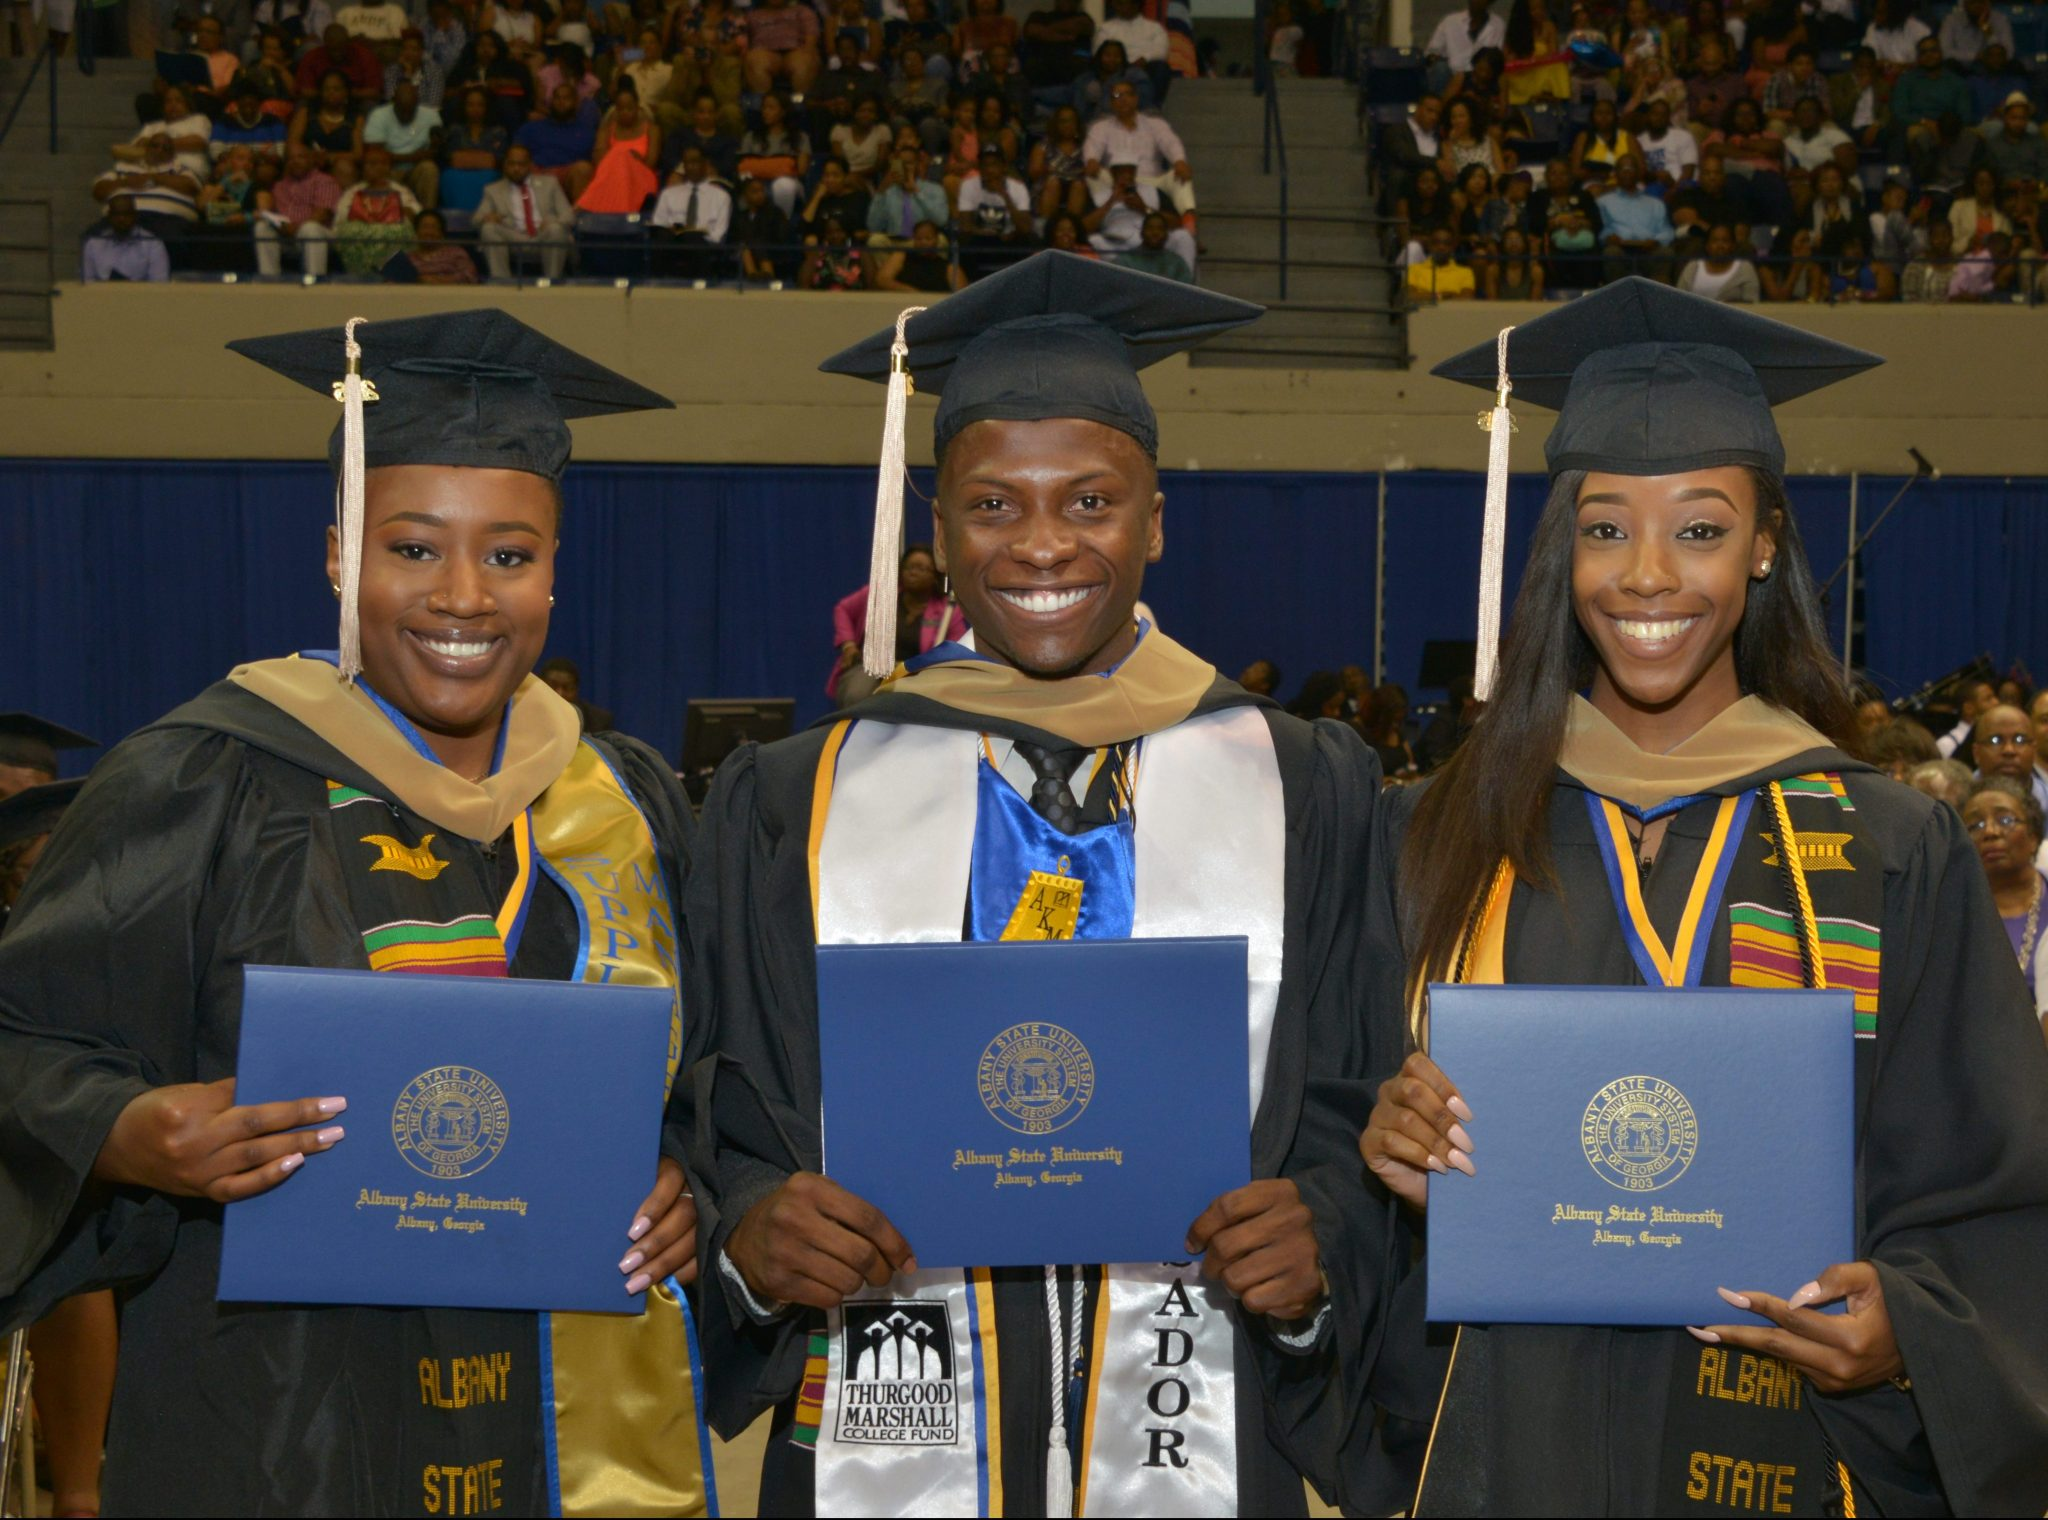 Albany State University 2017 Spring Commencement On May 6th